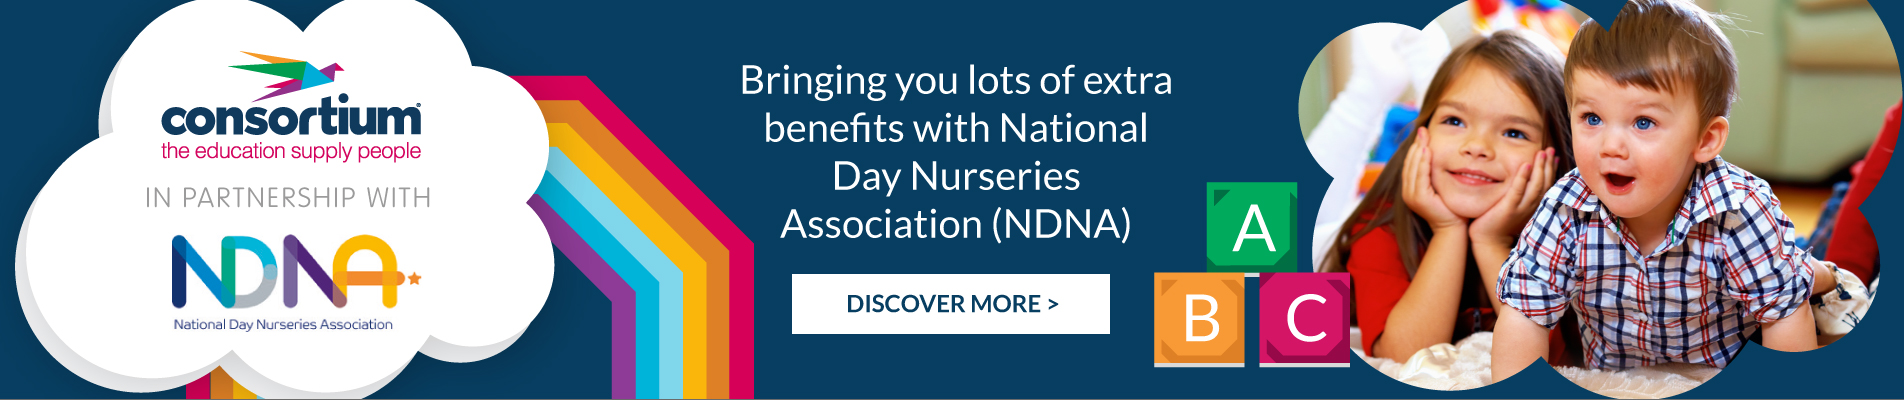 Bringing you lots of extra benefits with National Day Nurseries Association (NDNA)